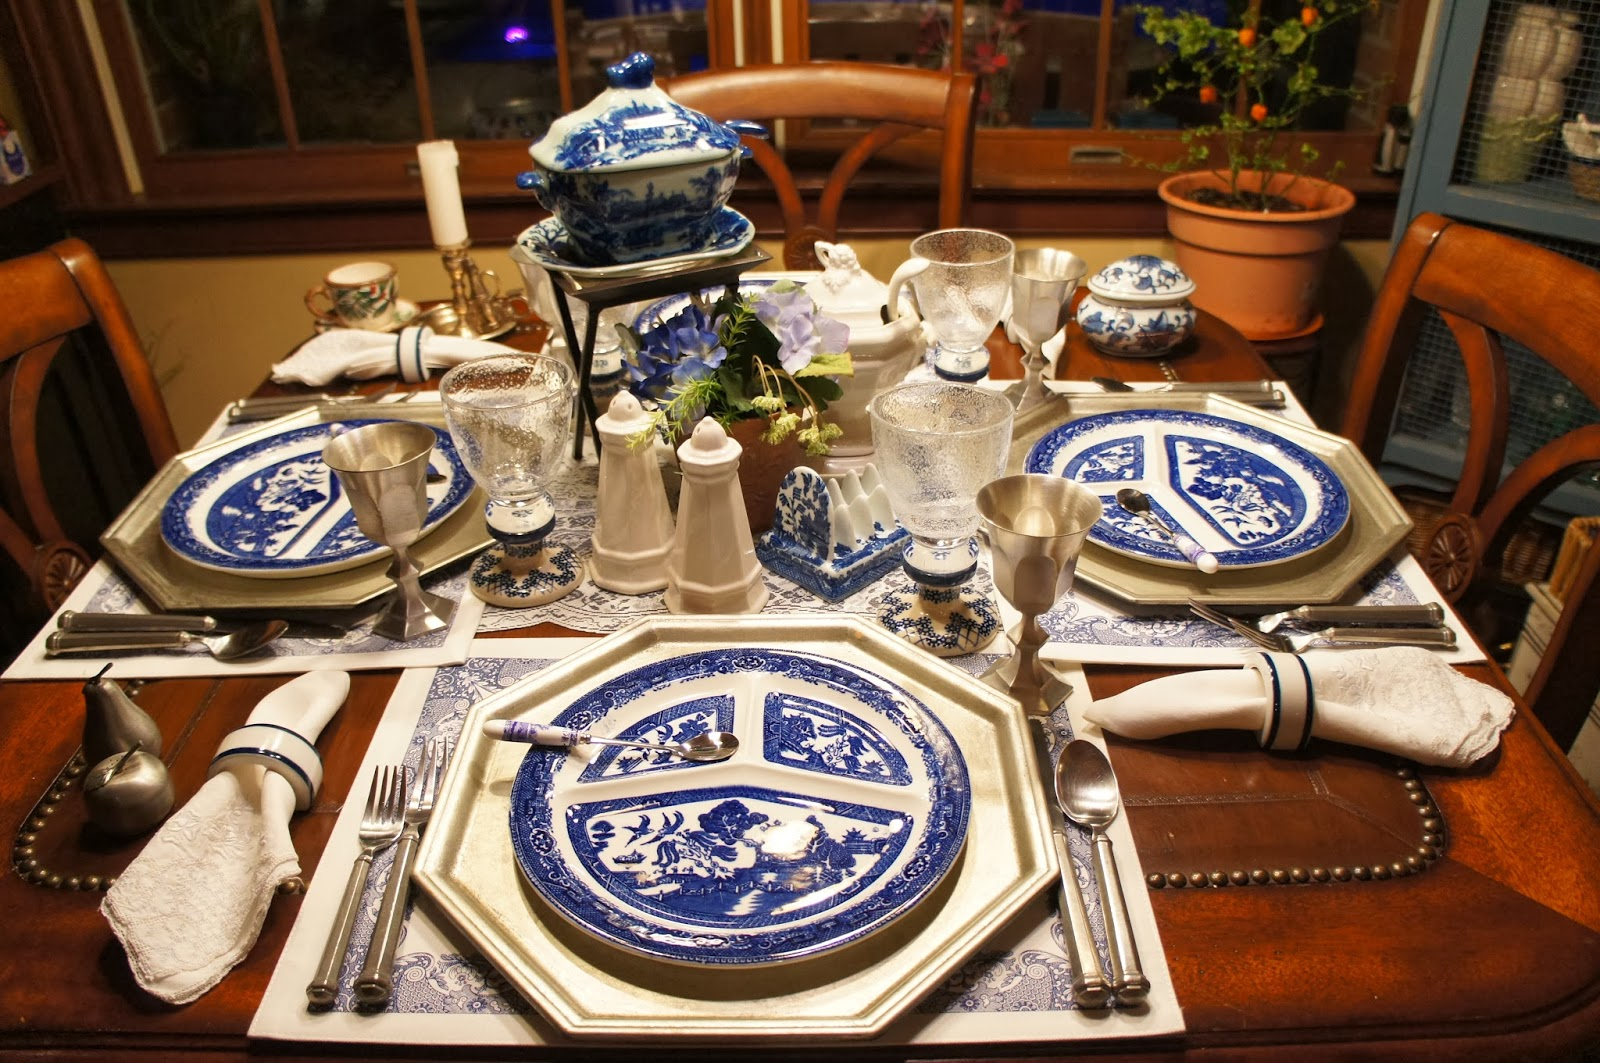 Christineu0027s Home and Travel Adventures Blue Willow Divided Plates and Pewter & Christineu0027s Home and Travel Adventures: Blue Willow Divided Plates ...